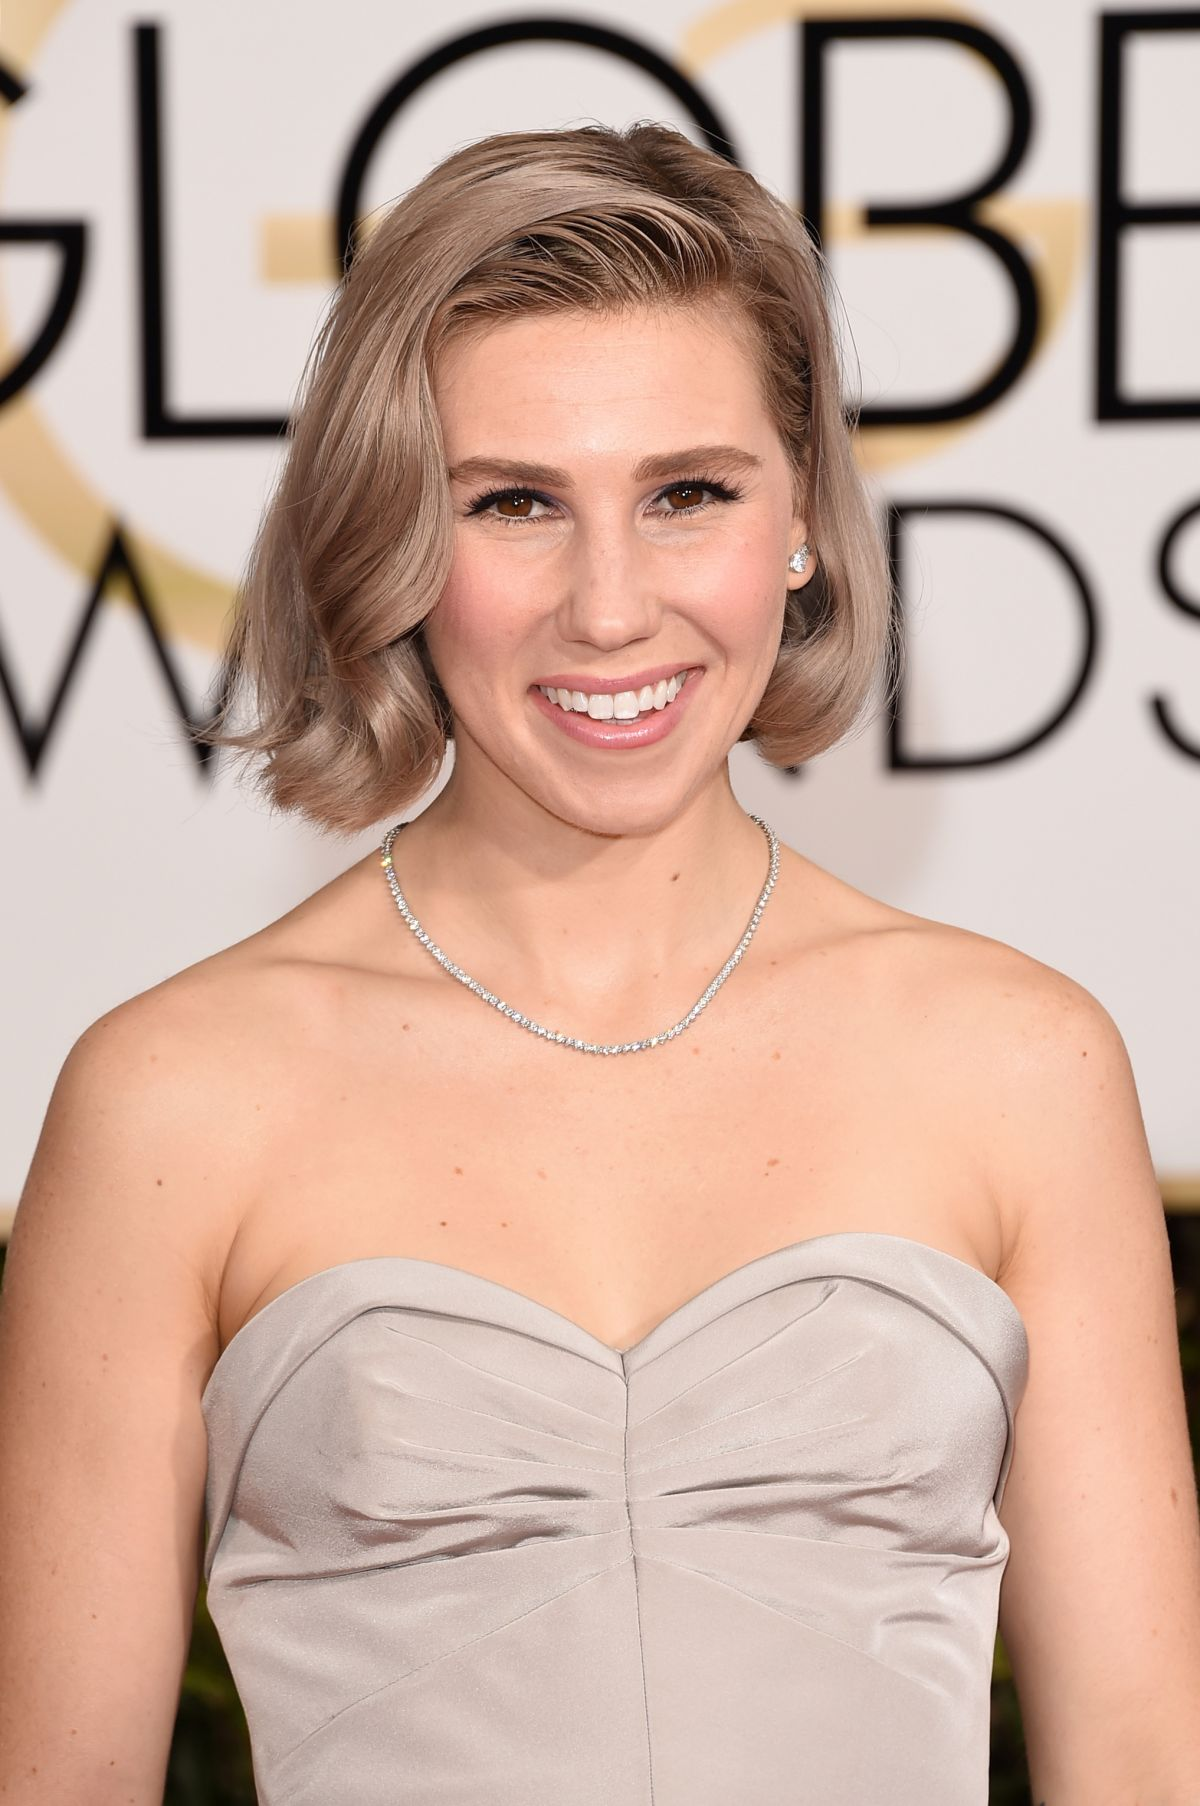 zosia mamet polishzosia mamet interview, zosia mamet husband, zosia mamet name, zosia mamet twitter, zosia mamet & evan jonigkeit, zosia mamet wiki, zosia mamet instagram, zosia mamet wedding, zosia mamet style, zosia mamet patti smith, zosia mamet, зося мамет, zosia mamet imdb, zosia mamet net worth, zosia mamet singing, zosia mamet tumblr, zosia mamet zimbio, zosia mamet feet, zosia mamet polish, zosia mamet tattoos